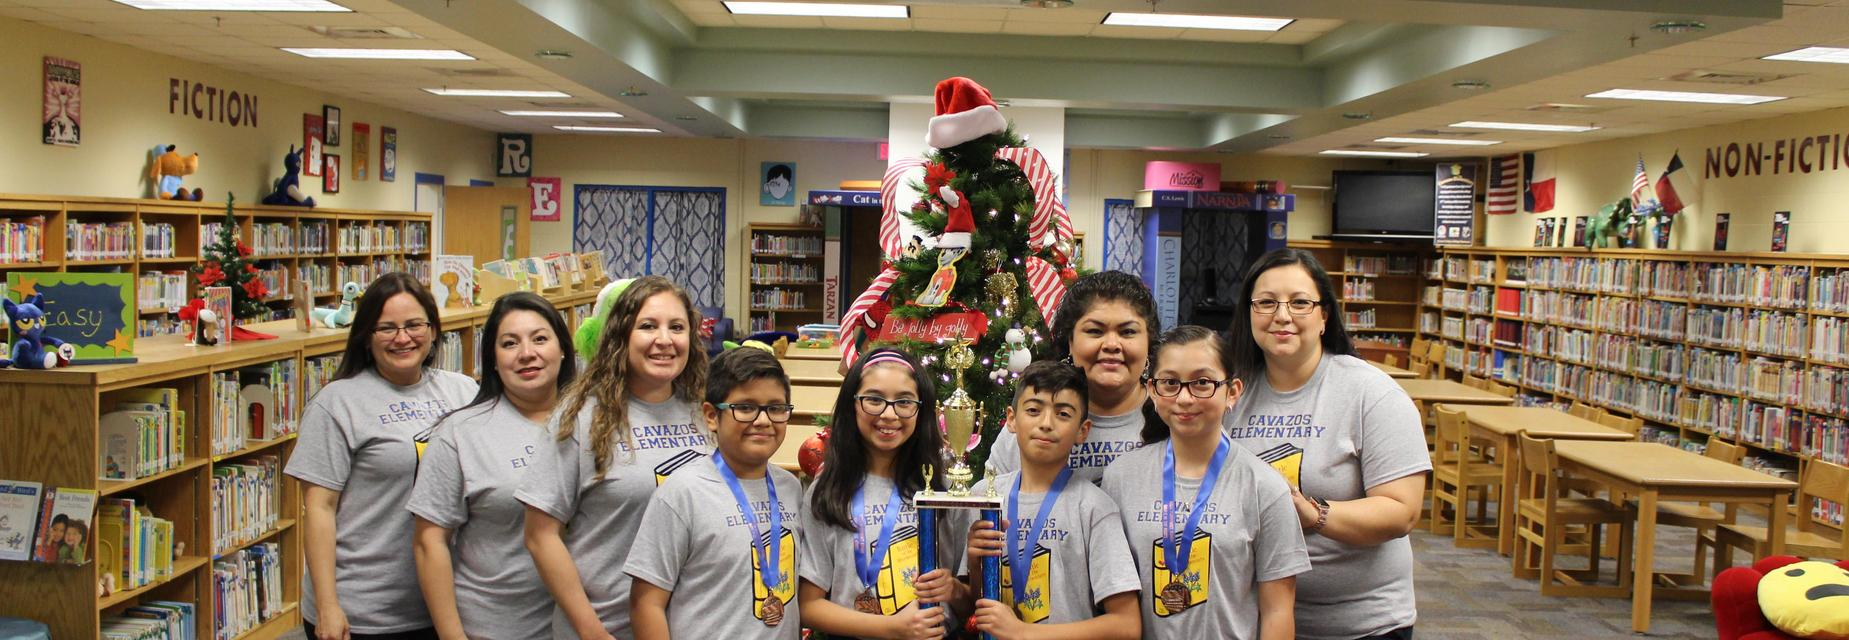 Bluebonnet team with trophy and staff members